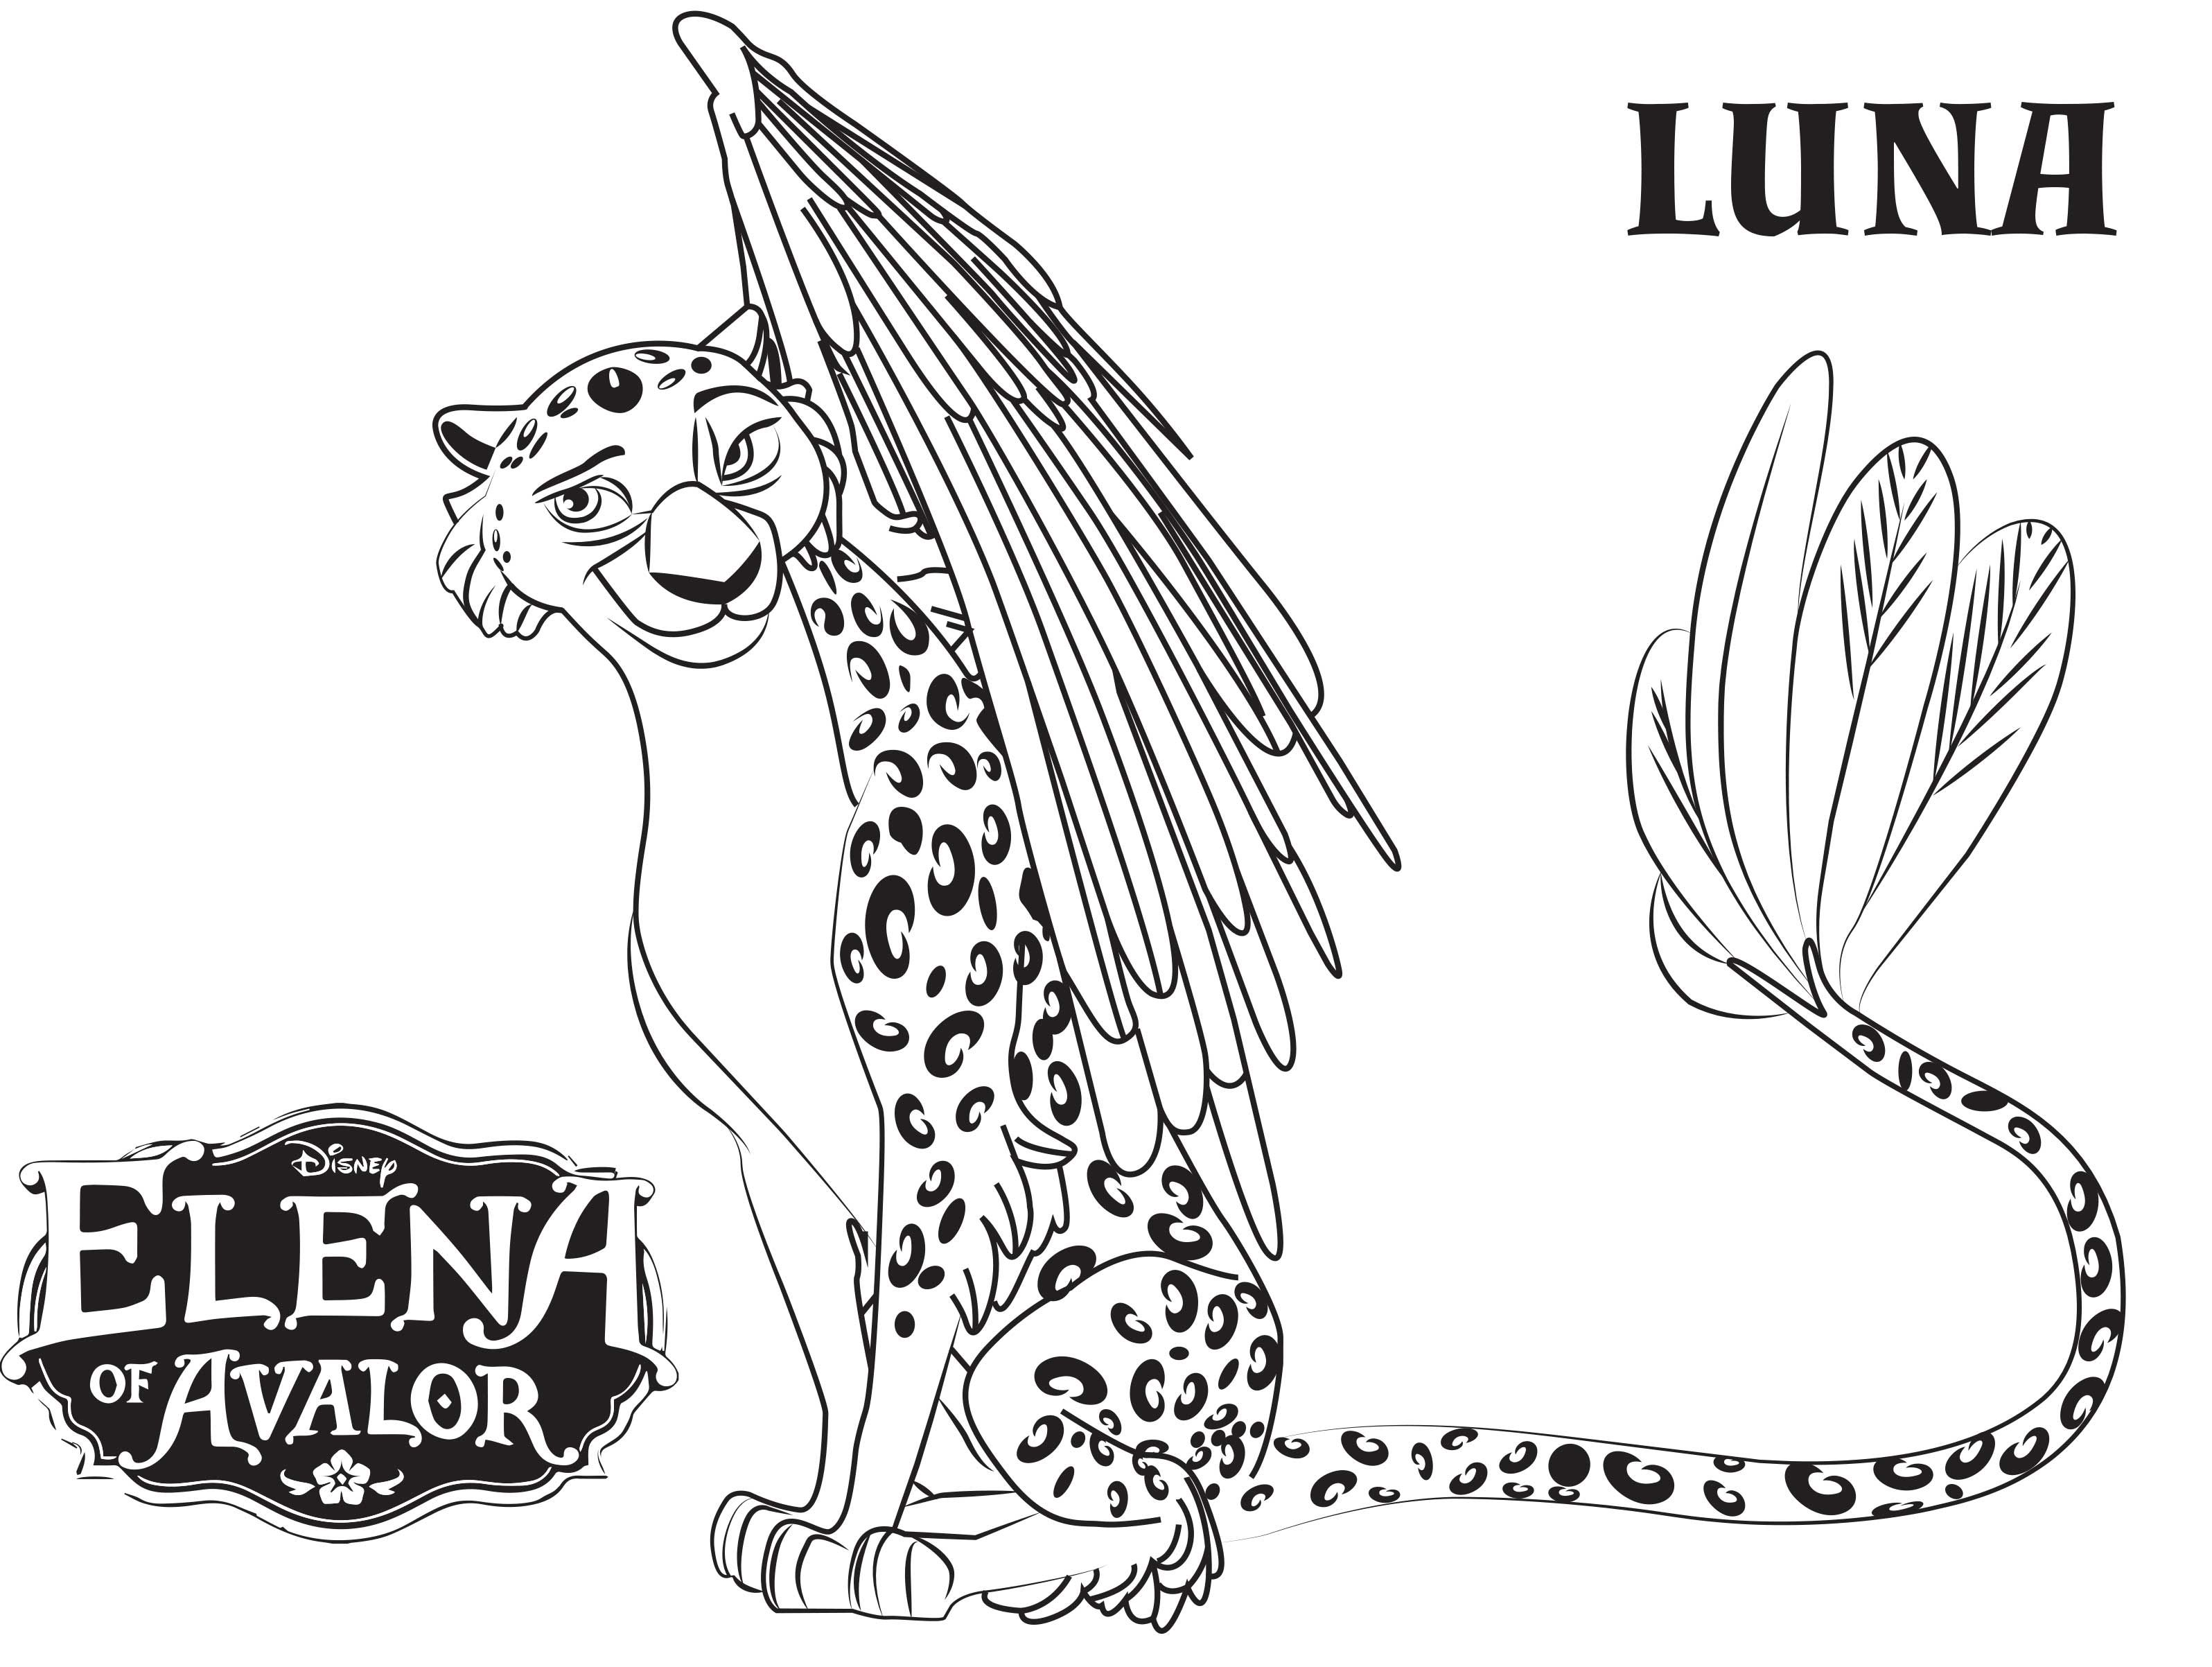 Disney's Elena of Avalor Coloring Pages Sheet, Free Disney